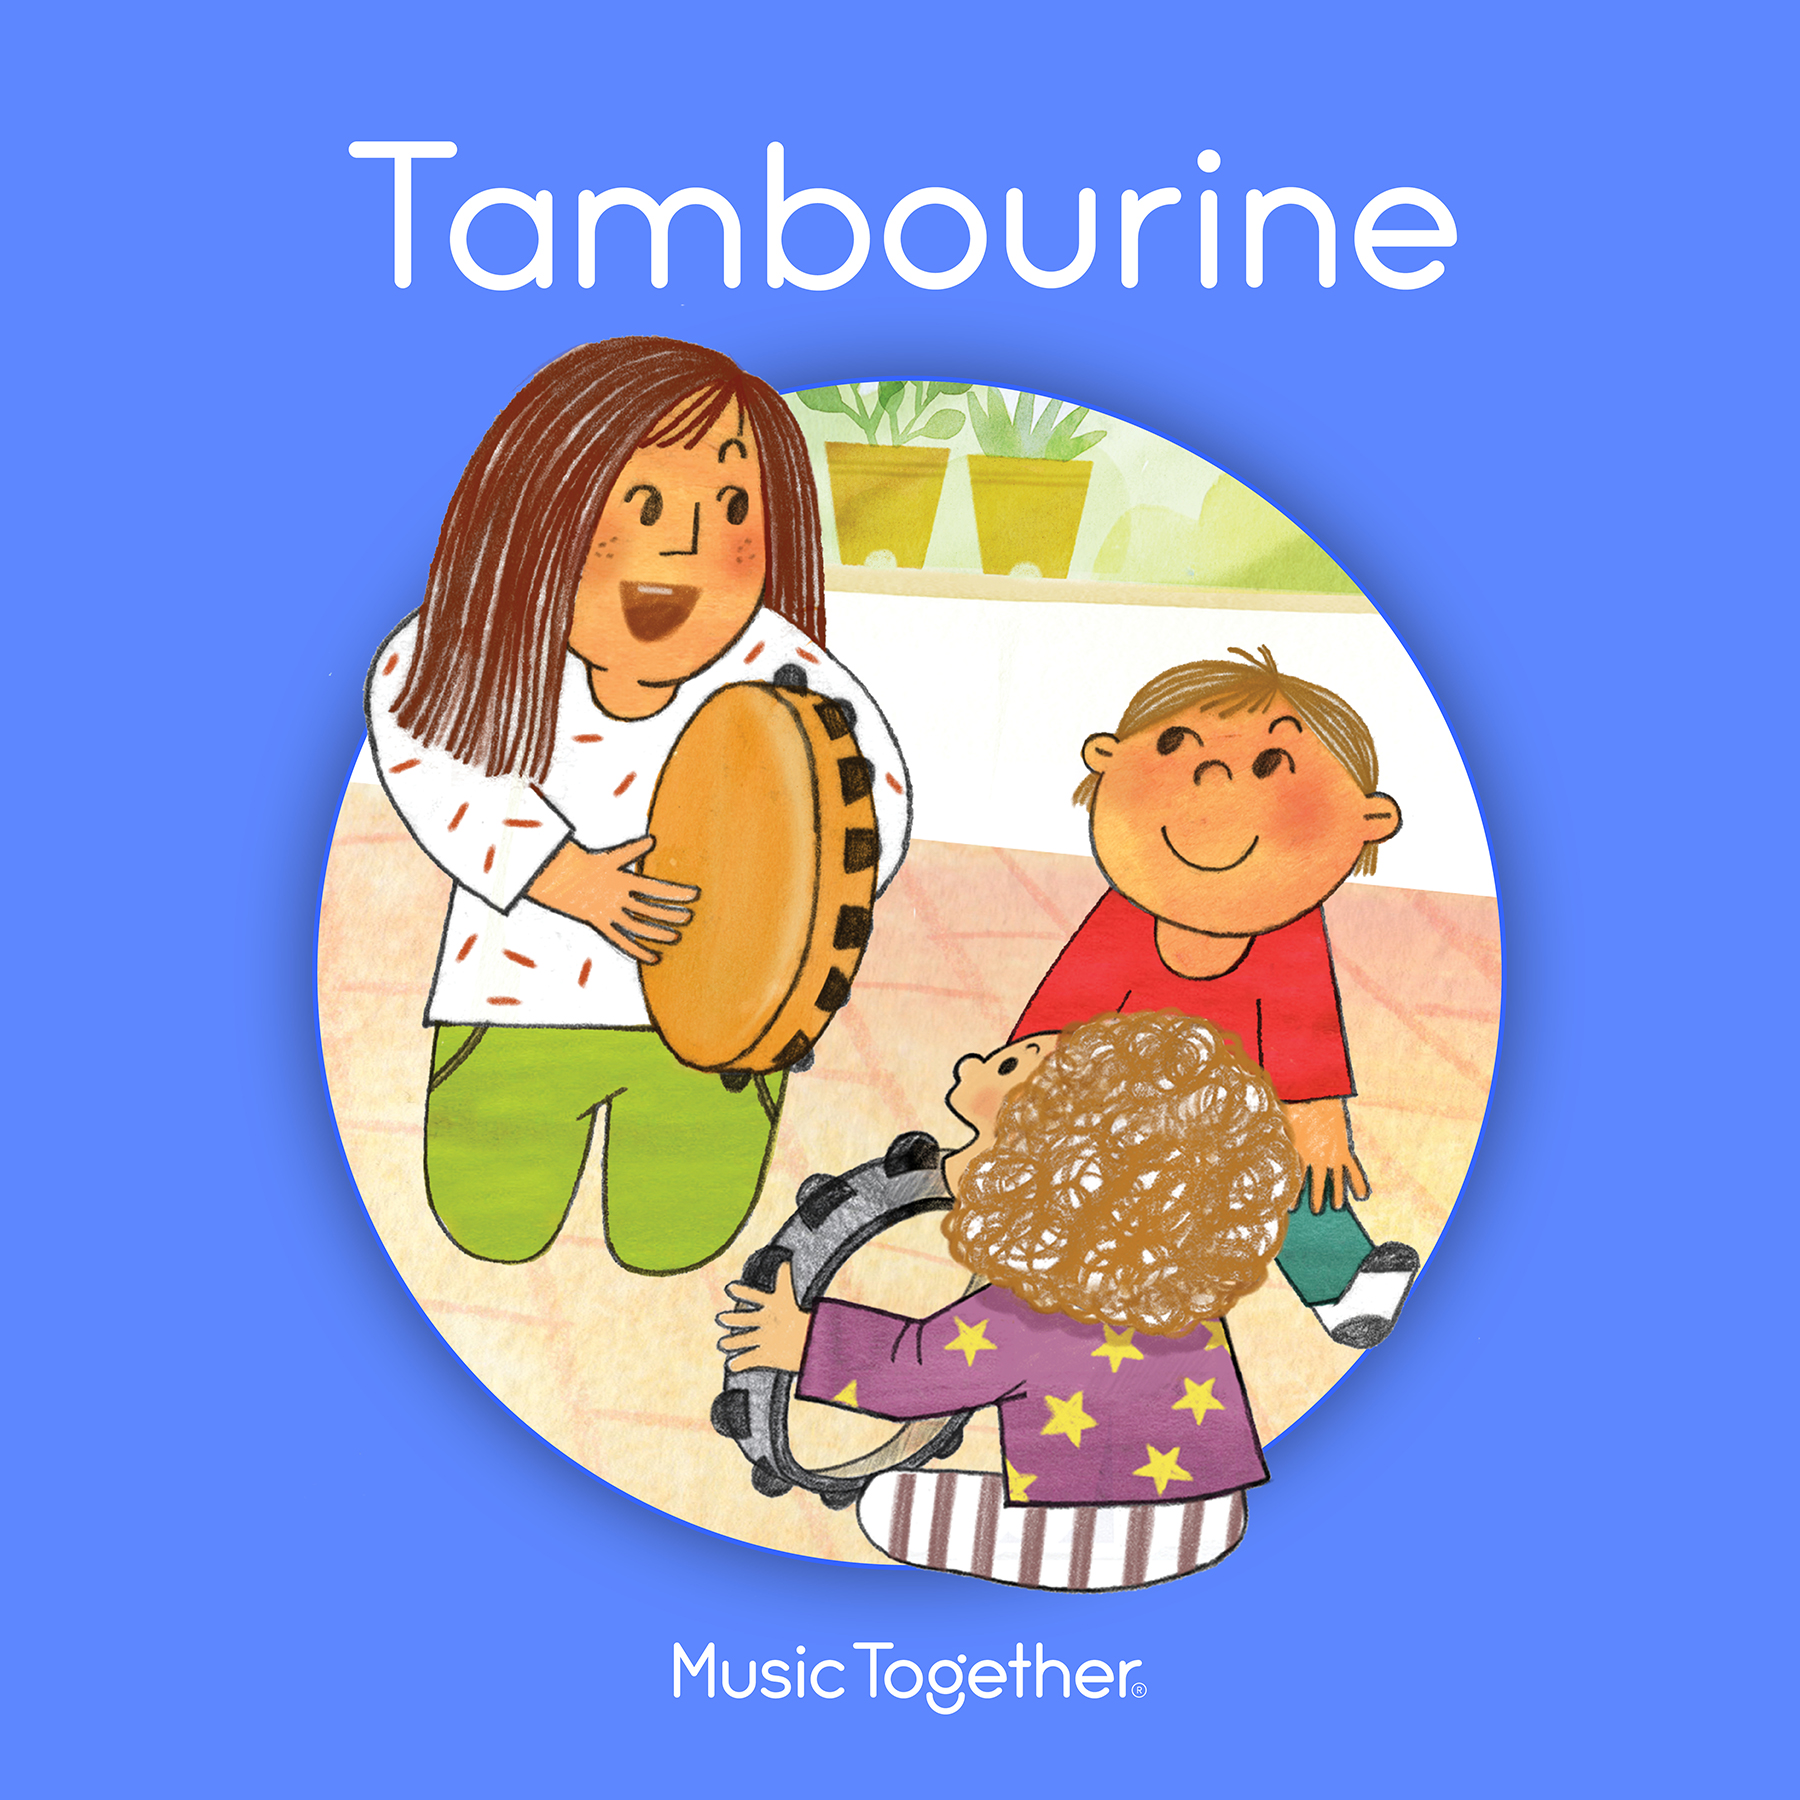 New Songbook this Spring! - The new edition of the Tambourine family songbook series is debuting this spring! Each song is brought to life through colorful and engaging illustrations by award-winning artist Jaime Kim and children's book illustrator Gerald Kelley. The new book will inspire your family to play with music all week long. You'll find it helpful to learn the lyrics, as a jumping-off point for creative storytelling, and to learn more about the songs you're singing in class. Your child may enjoy snuggling with you and singing through the whole book at once—or opening to a page to tell you what song they want to sing!About the IllustratorsRead more about Jaime Kim on her website: https://www.jaimekim.com.See more of Gerald Kelley's work on his website: https://www.geraldkelley.com.